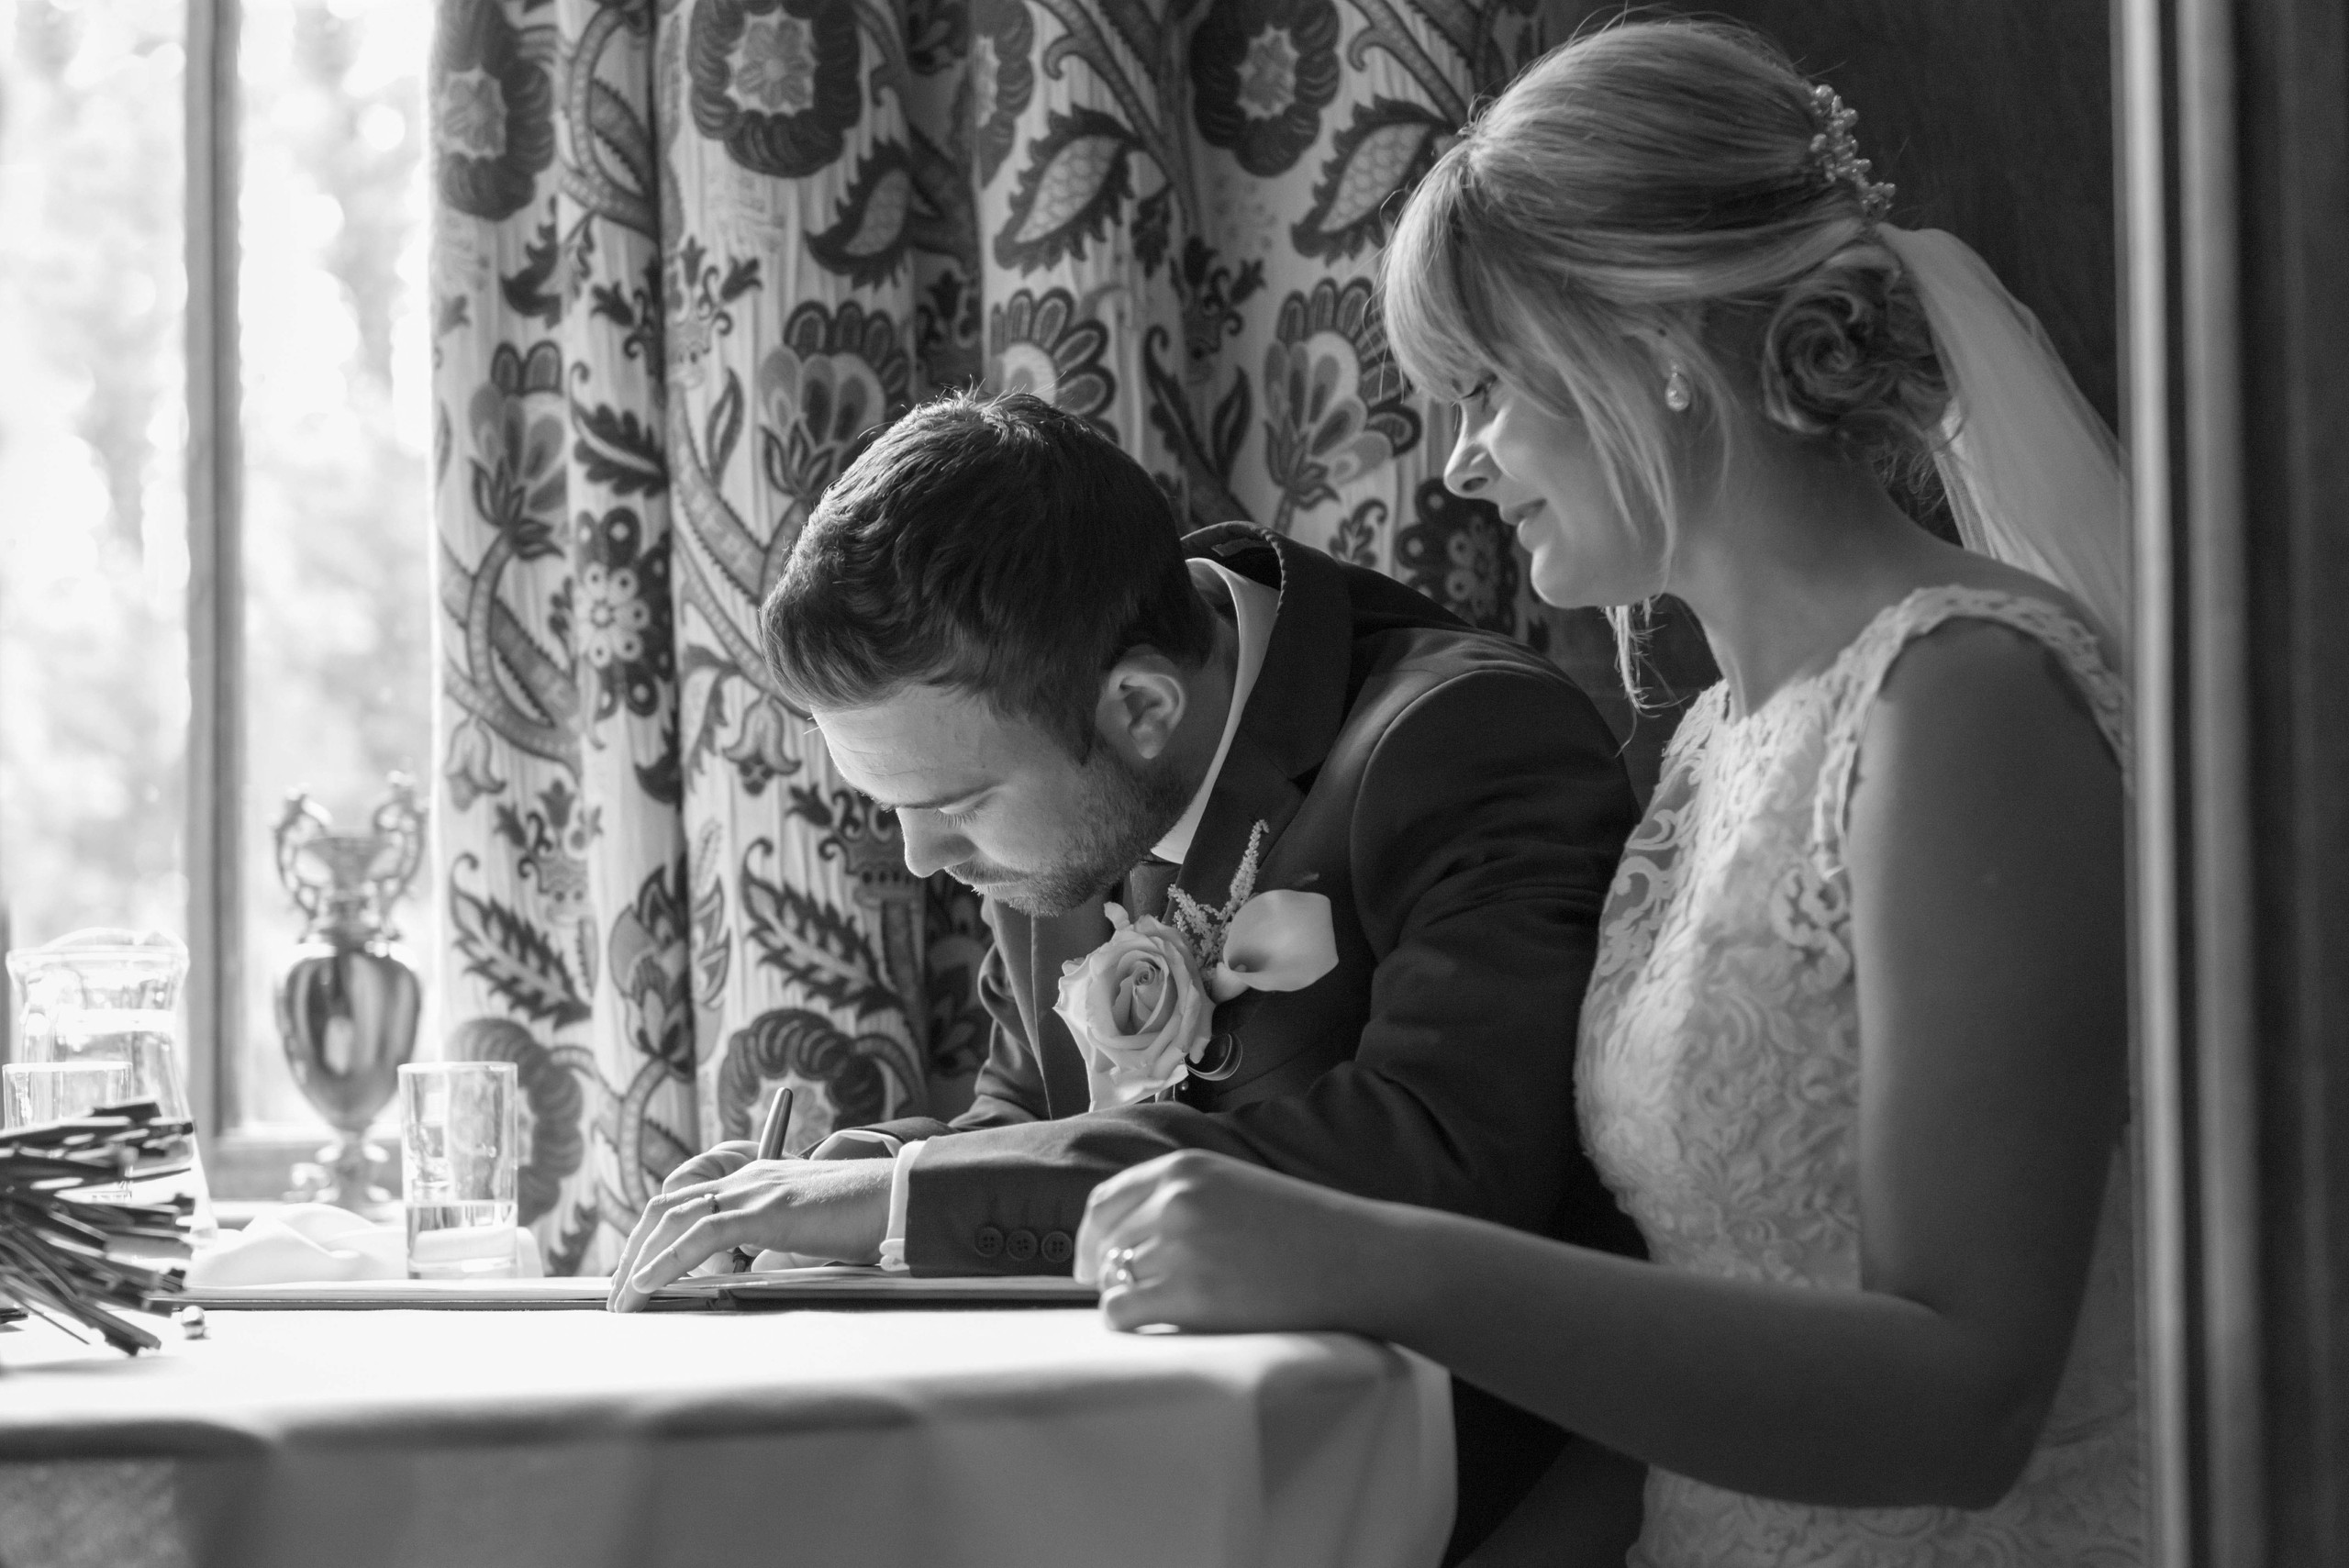 Black and white monochrome candid wedding photograph of bride and groom as groom signs register during wedding ceremony on wedding day at Ellingham Hall wedding venue in Northumberland